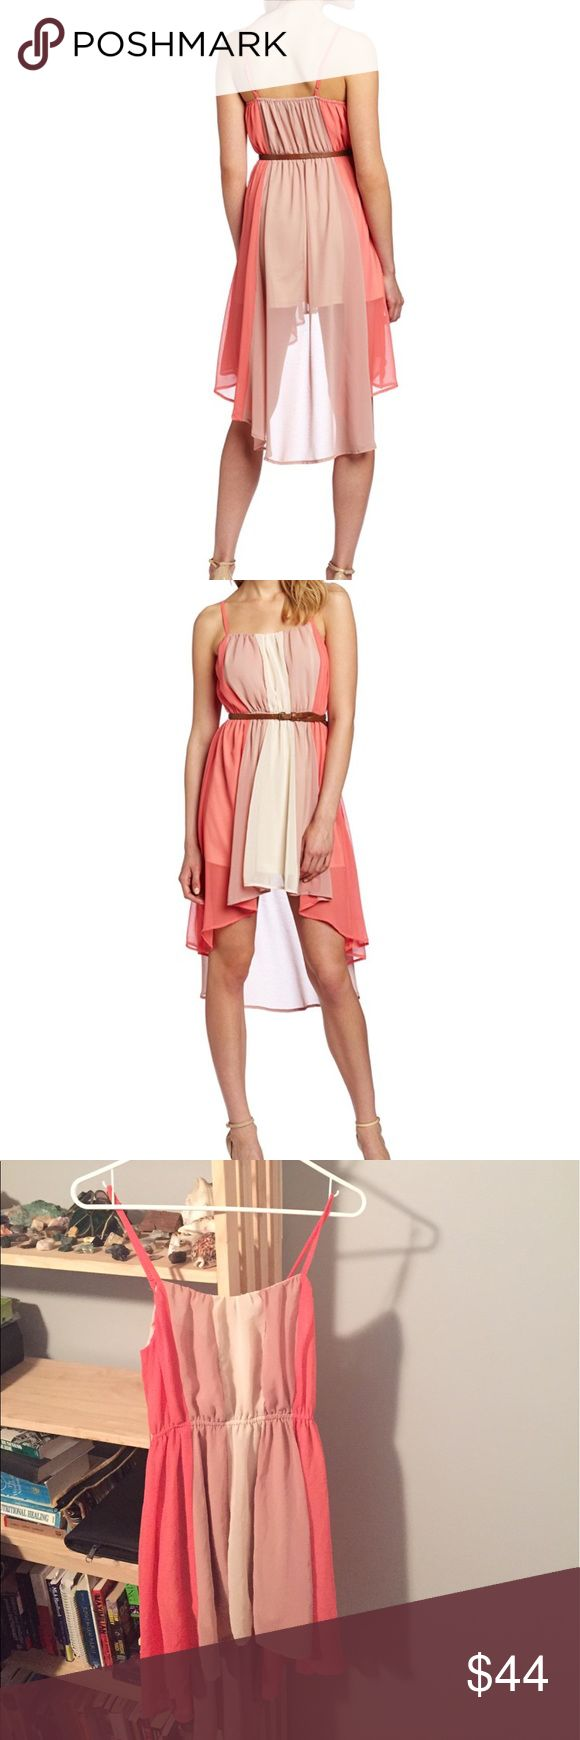 C. Luce Women's Fun Daytime Dress Coral 100% Polyester Machine Wash WITHOUT belt. Flowy Dress for Spring/Summer. Festival vibes, graduation, prom, and party dress. Adjustable Spaghetti Straps, slip underneath with coral sheer high/low asymmetrical bottom. C. Luce Dresses Asymmetrical